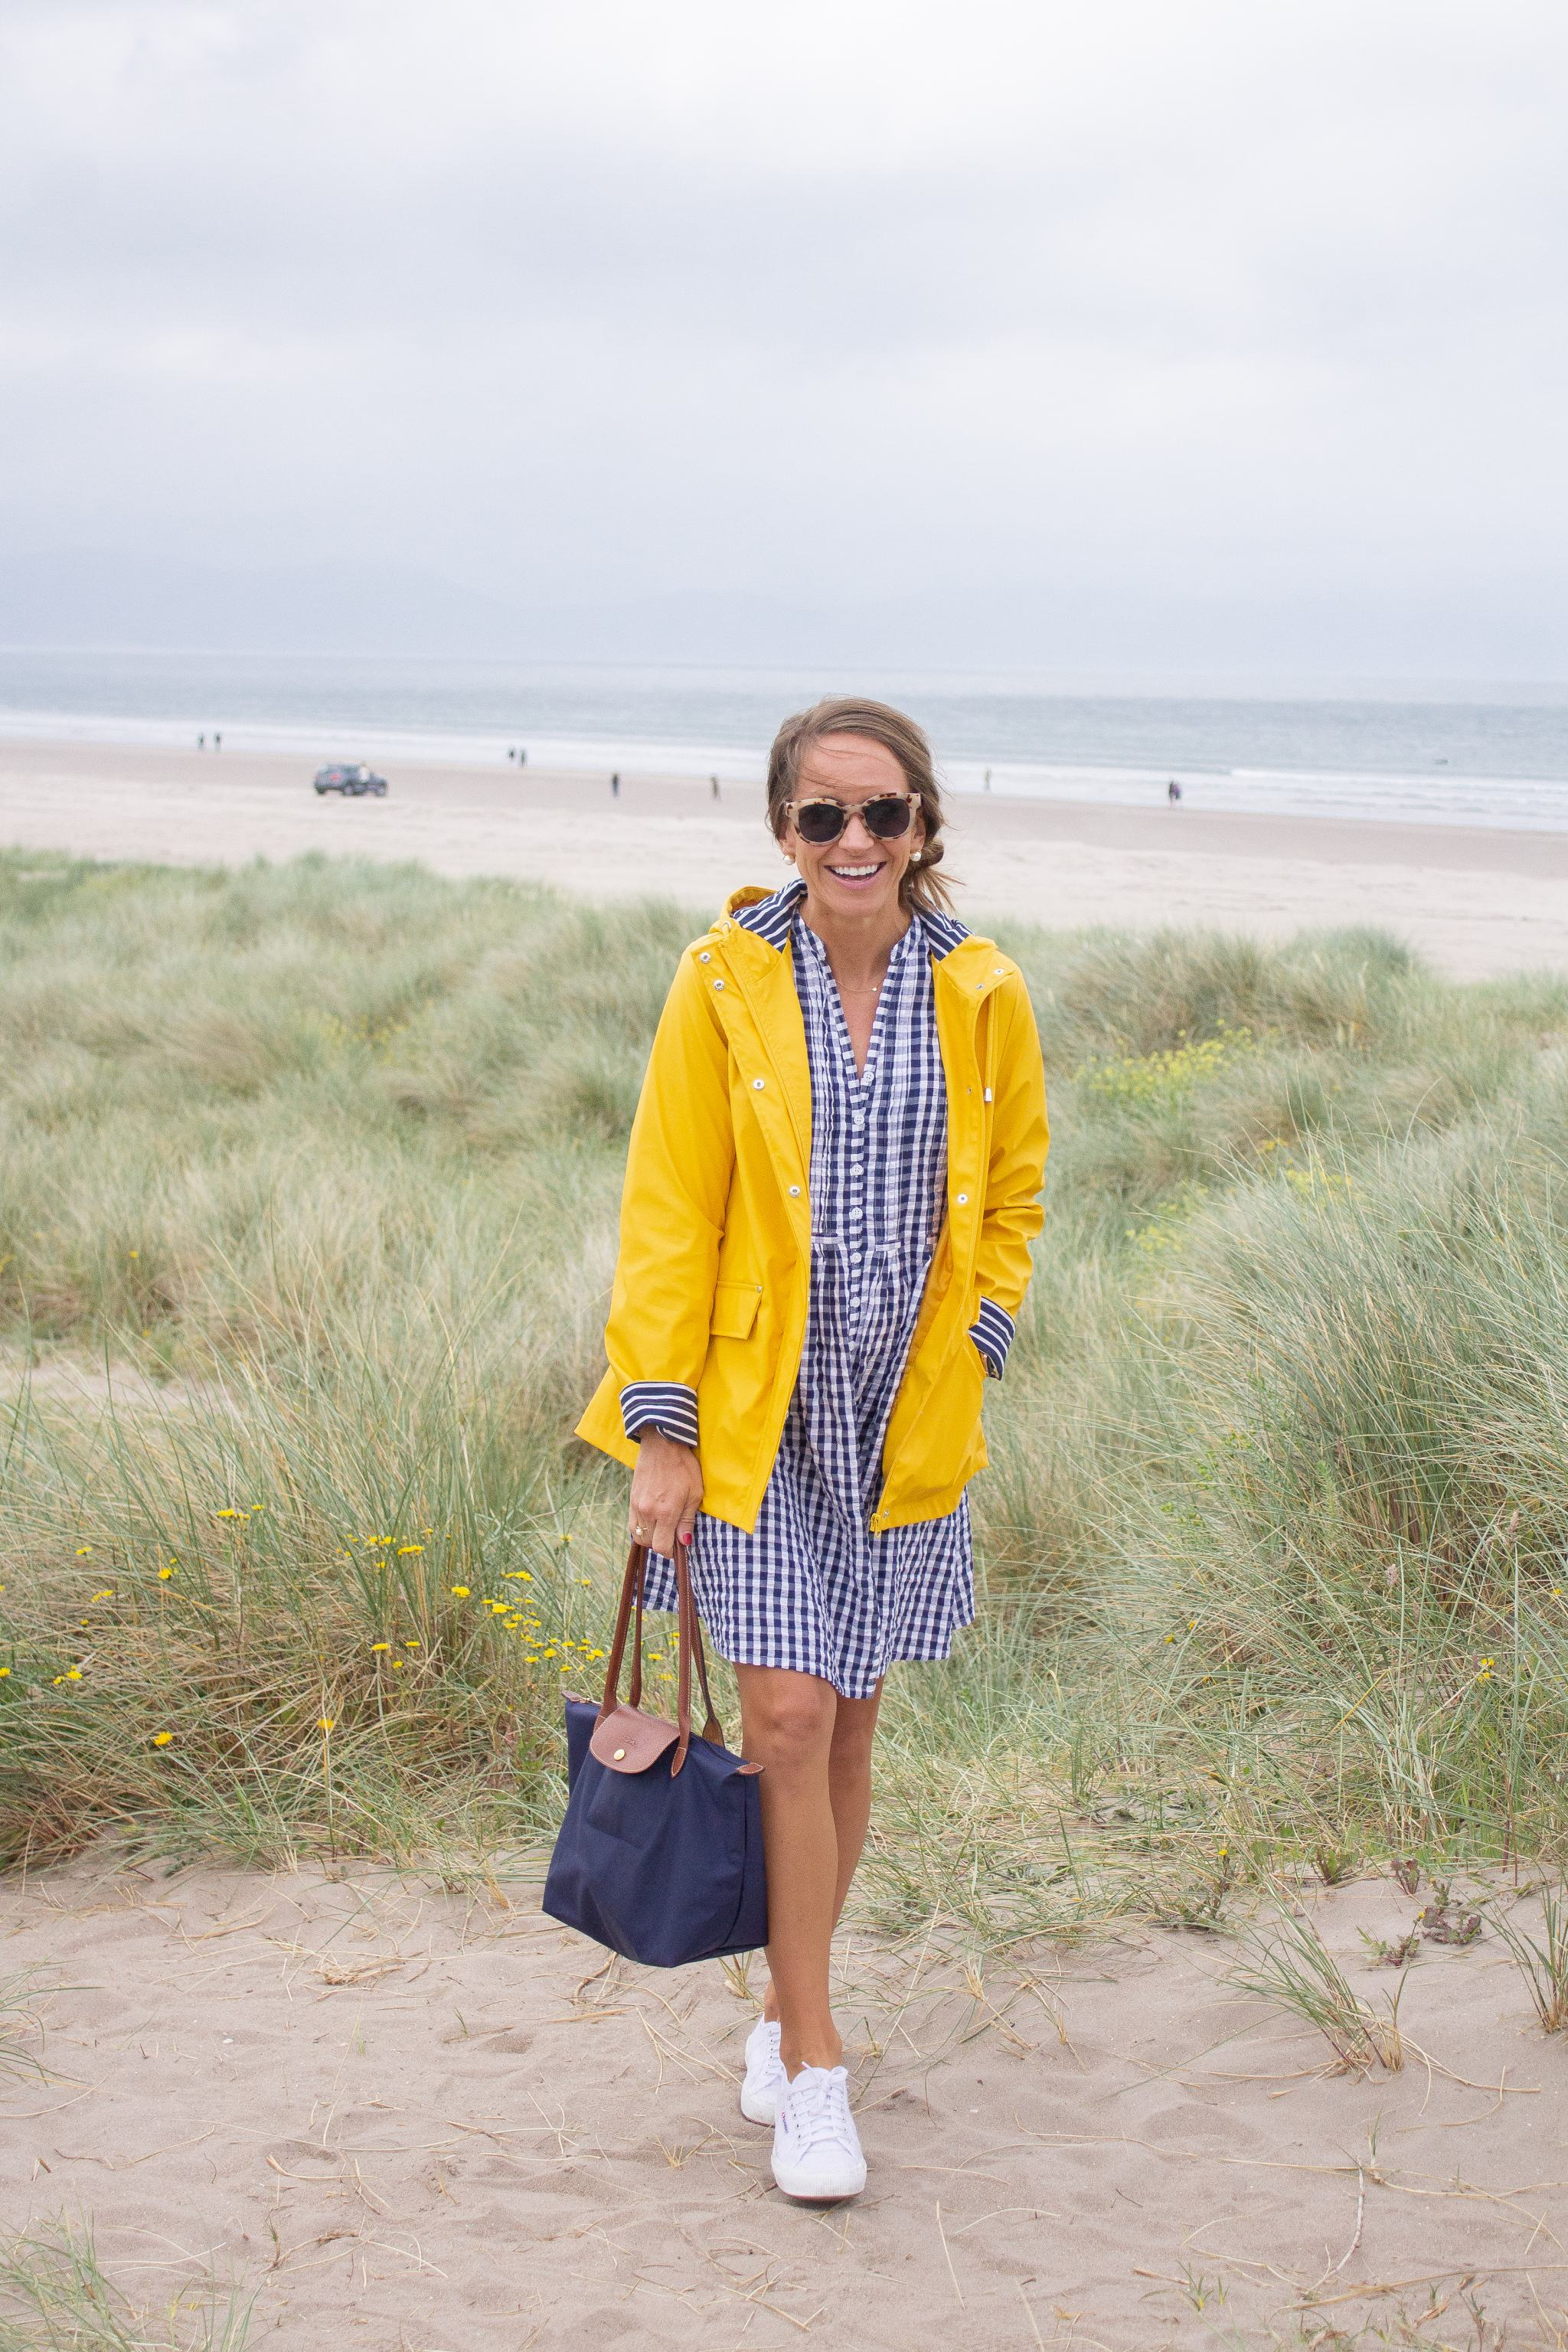 classic style - maternity style - second trimester outfit idea - pregnancy style - superga cotu sneakers - dingle peninsula - blue and yellow outfit - white superga sneakers - white sneakers with a dress - dress and sneakers - gingham dress - madison mathews juliette dress - blue and white gingham - yellow rain jacket - traveling in Ireland